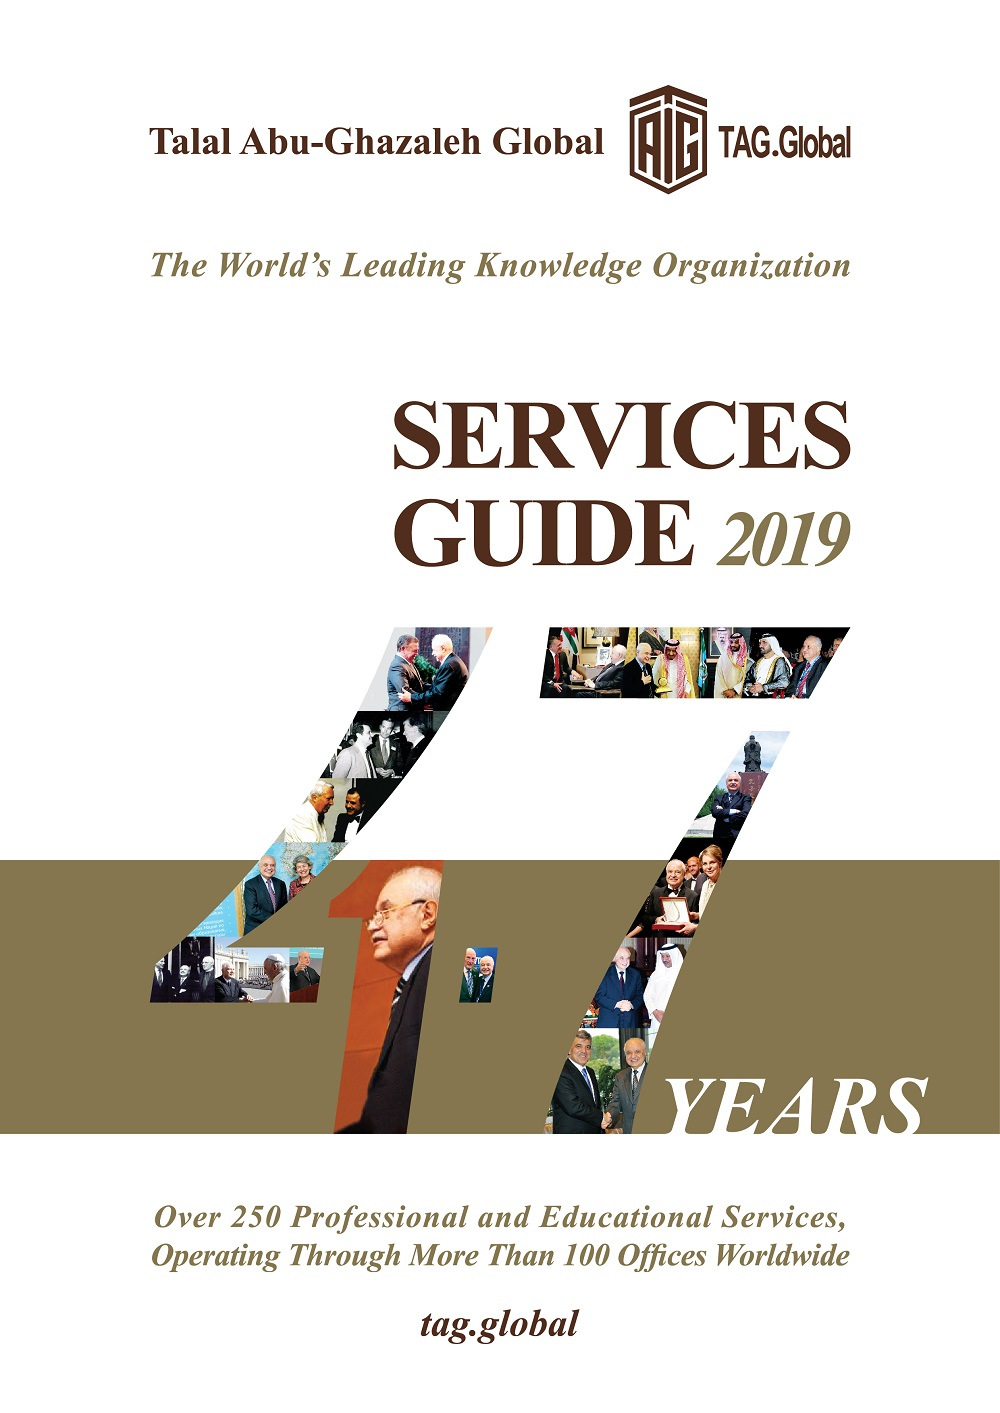 Talal Abu-Ghazaleh Global Launches its 2019 Services Guide